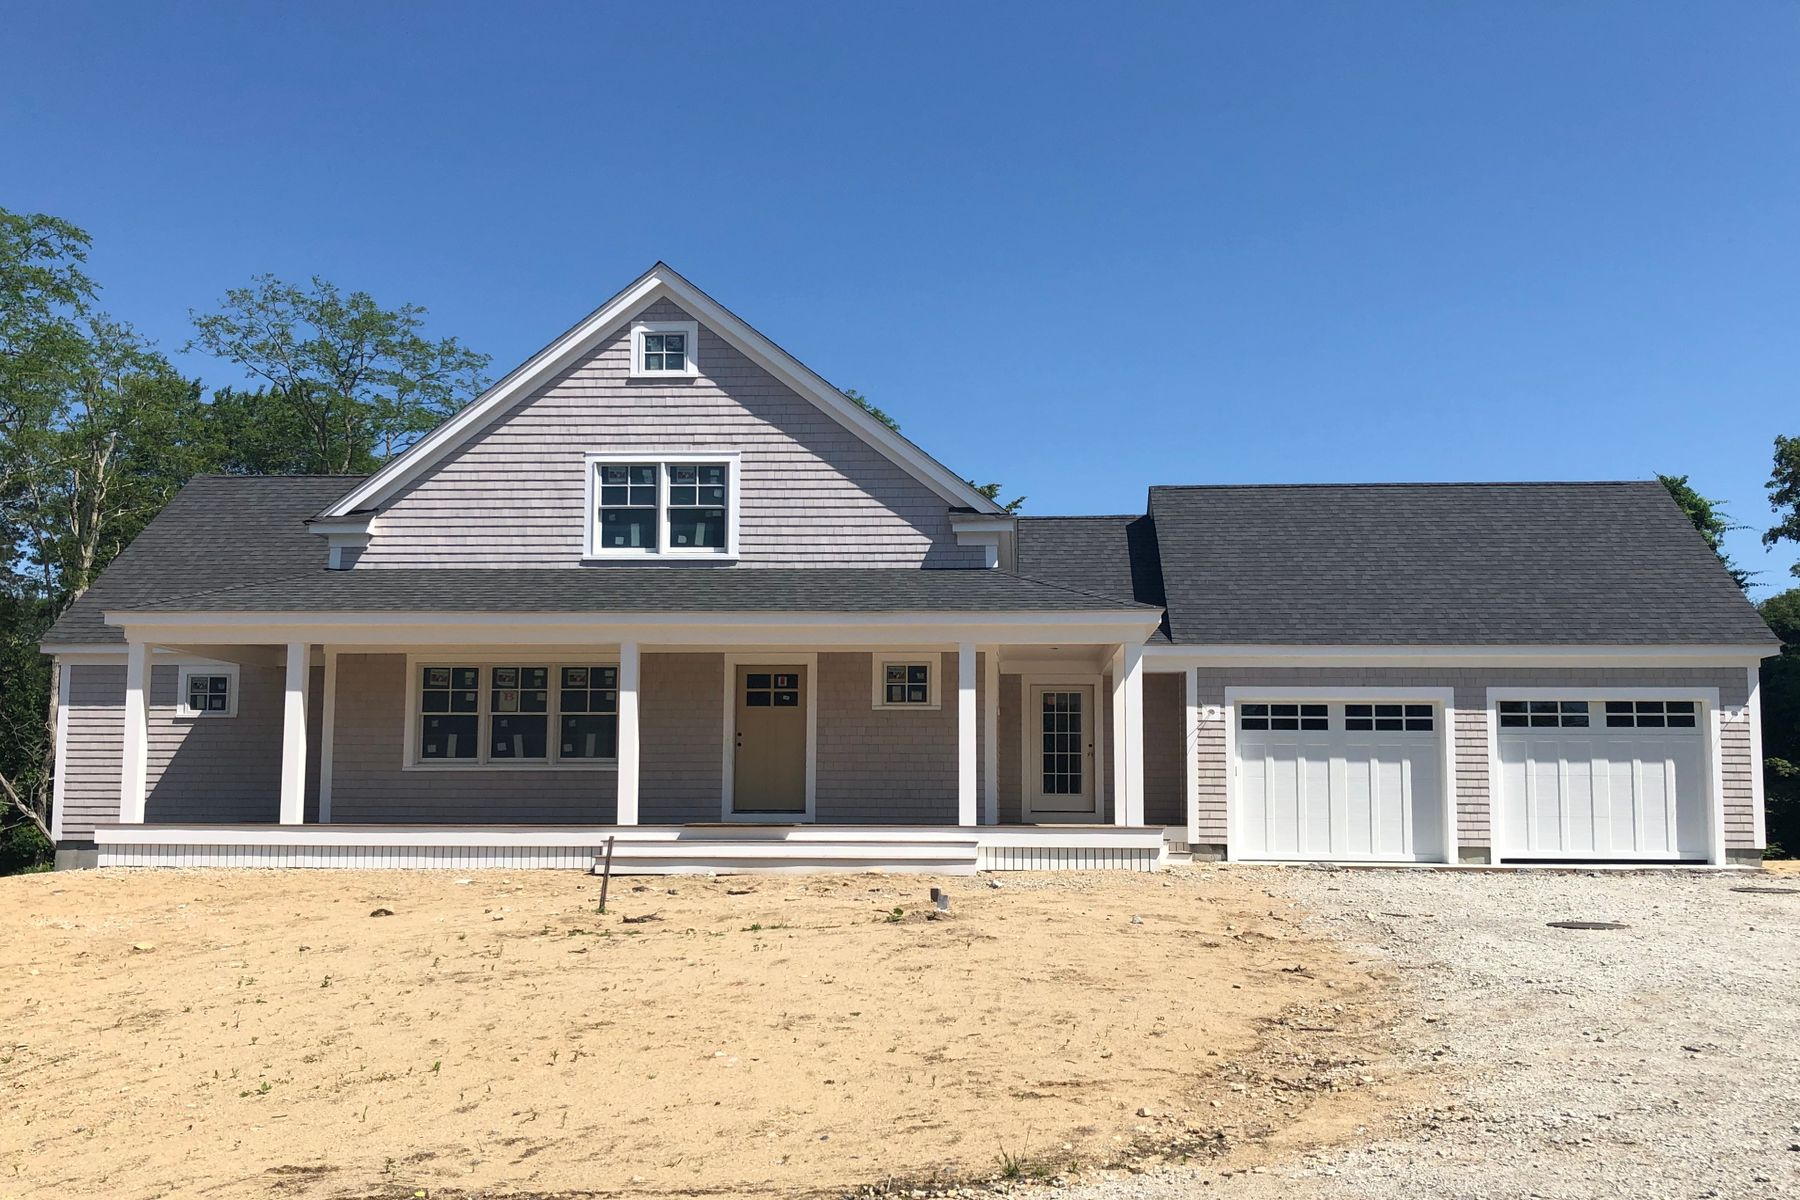 Single Family Homes for Active at North Falmouth Village New Construction 107 Cobblestone Lane North Falmouth, Massachusetts 02556 United States